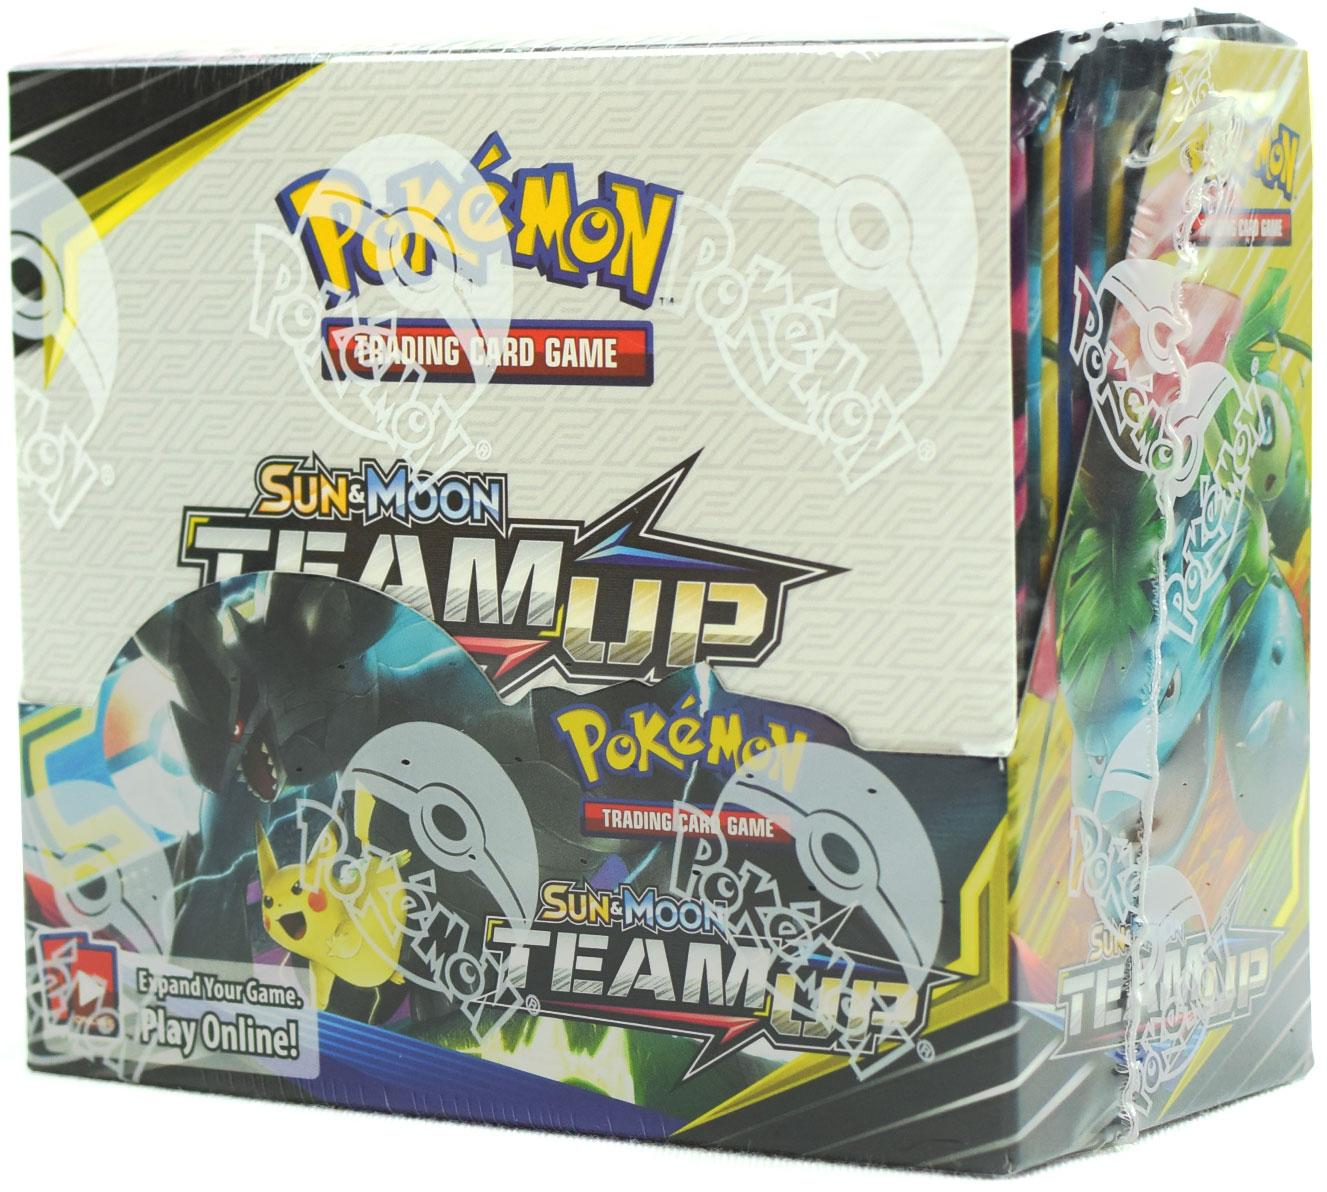 Pokémon TCG: Sun & Moon (SM9) Team Up Booster Box - Quecan Distribution